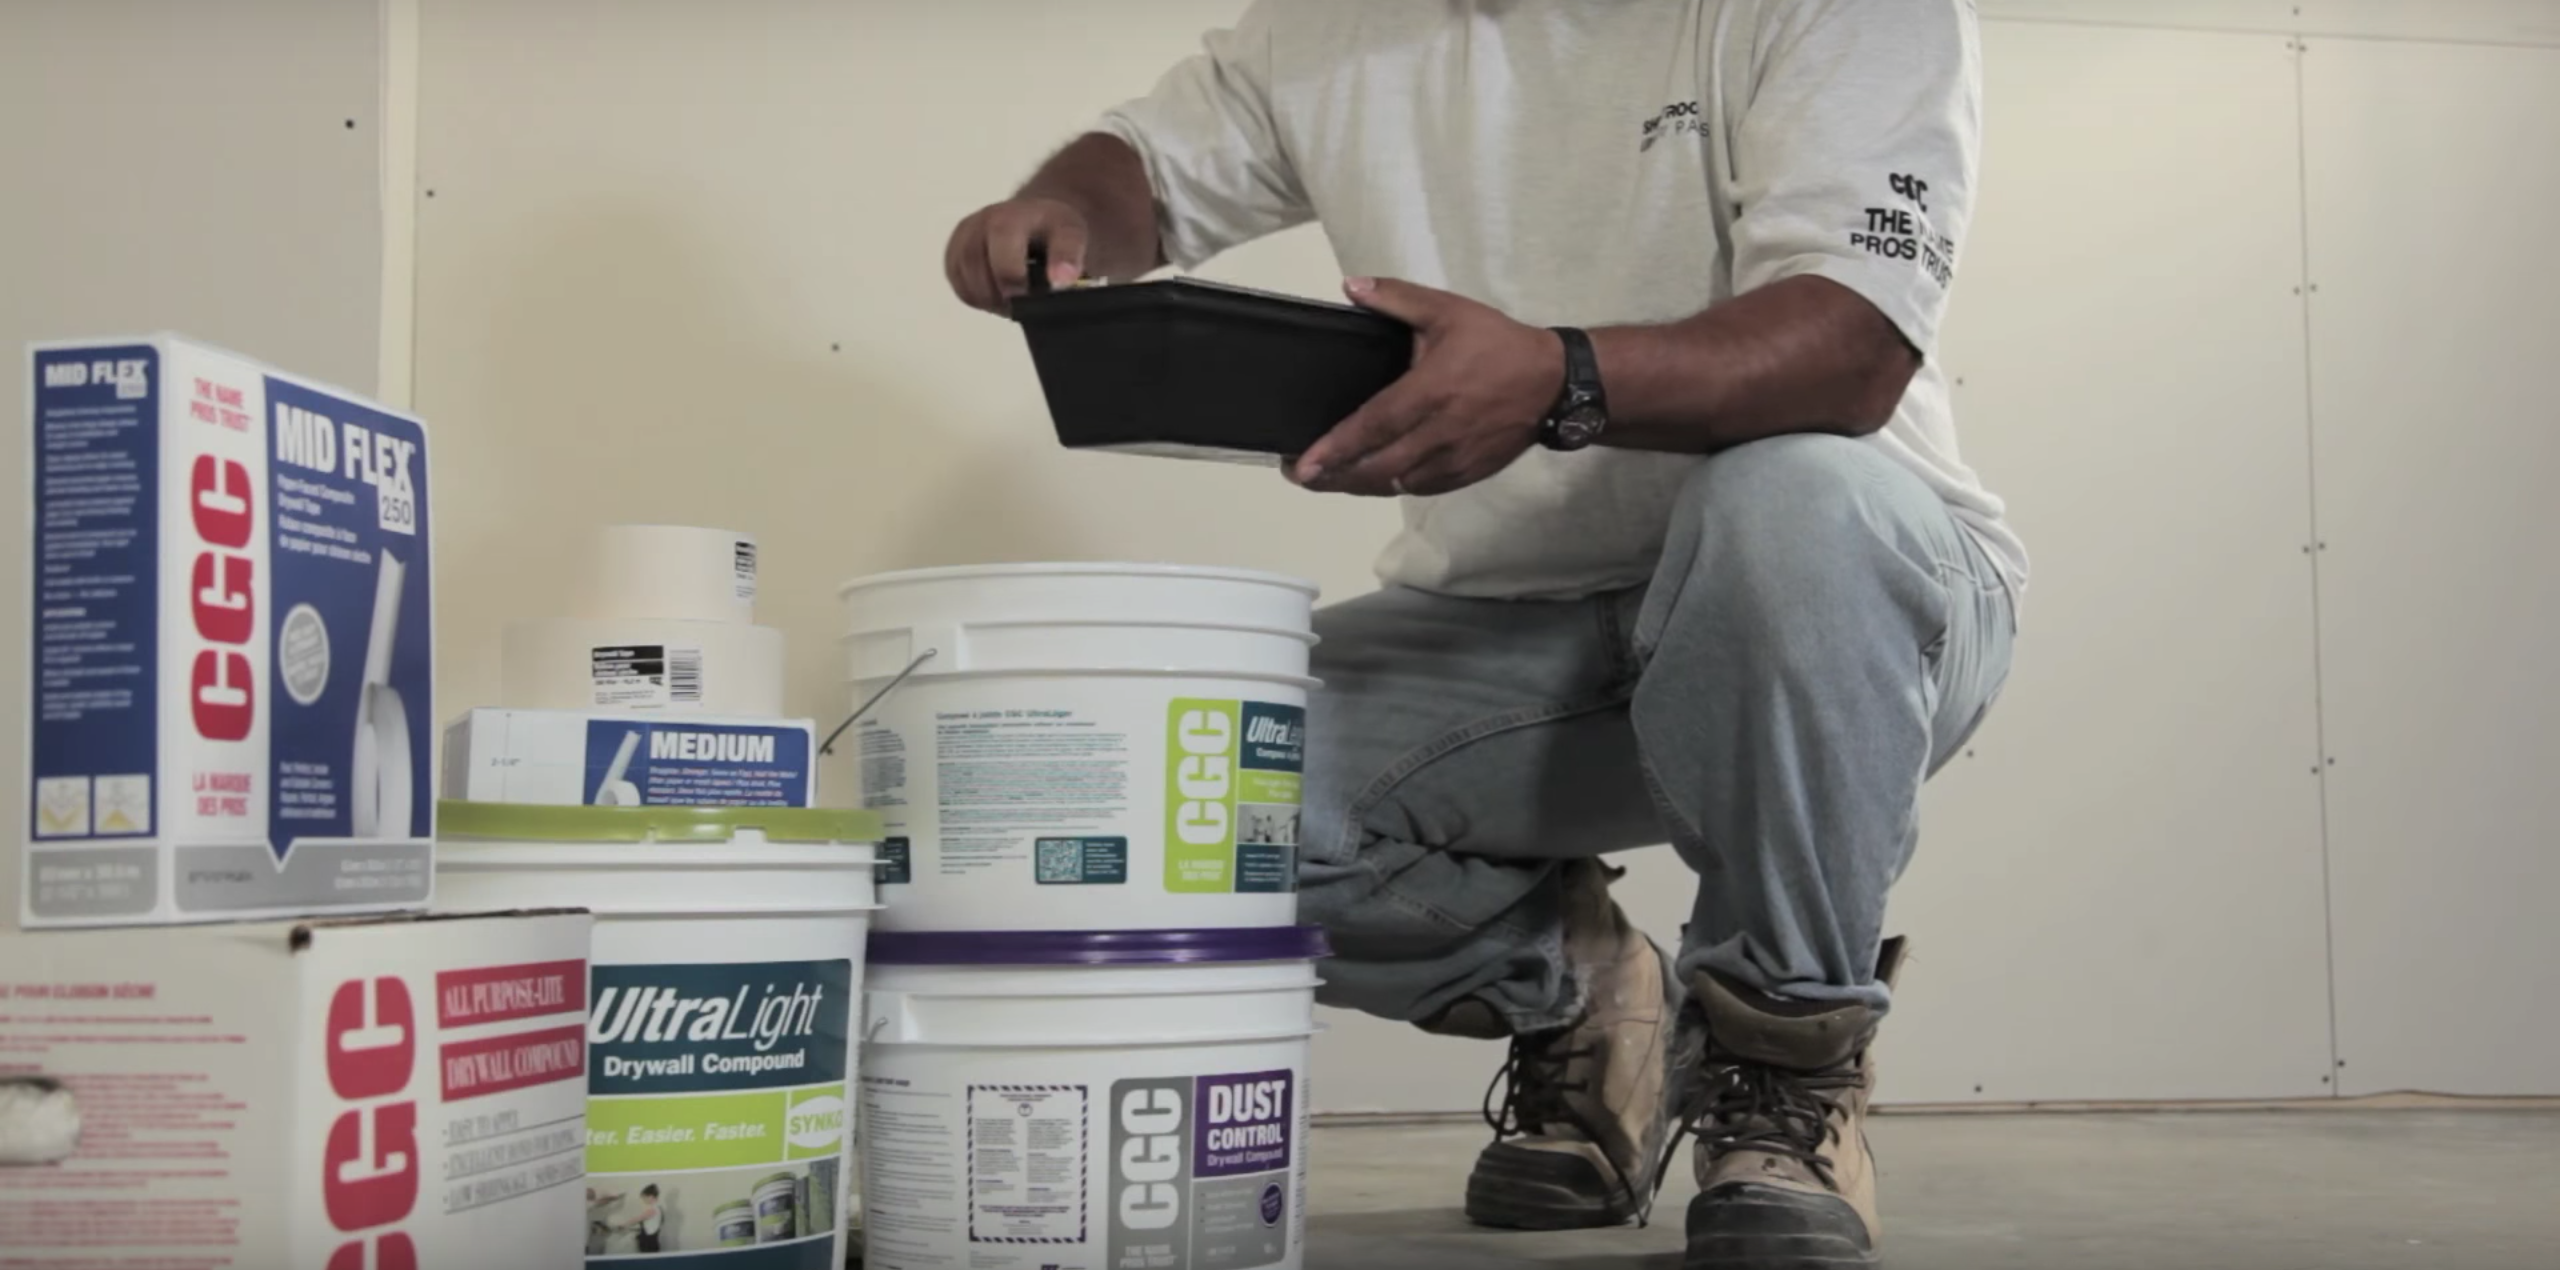 How To Apply Drywall Compound